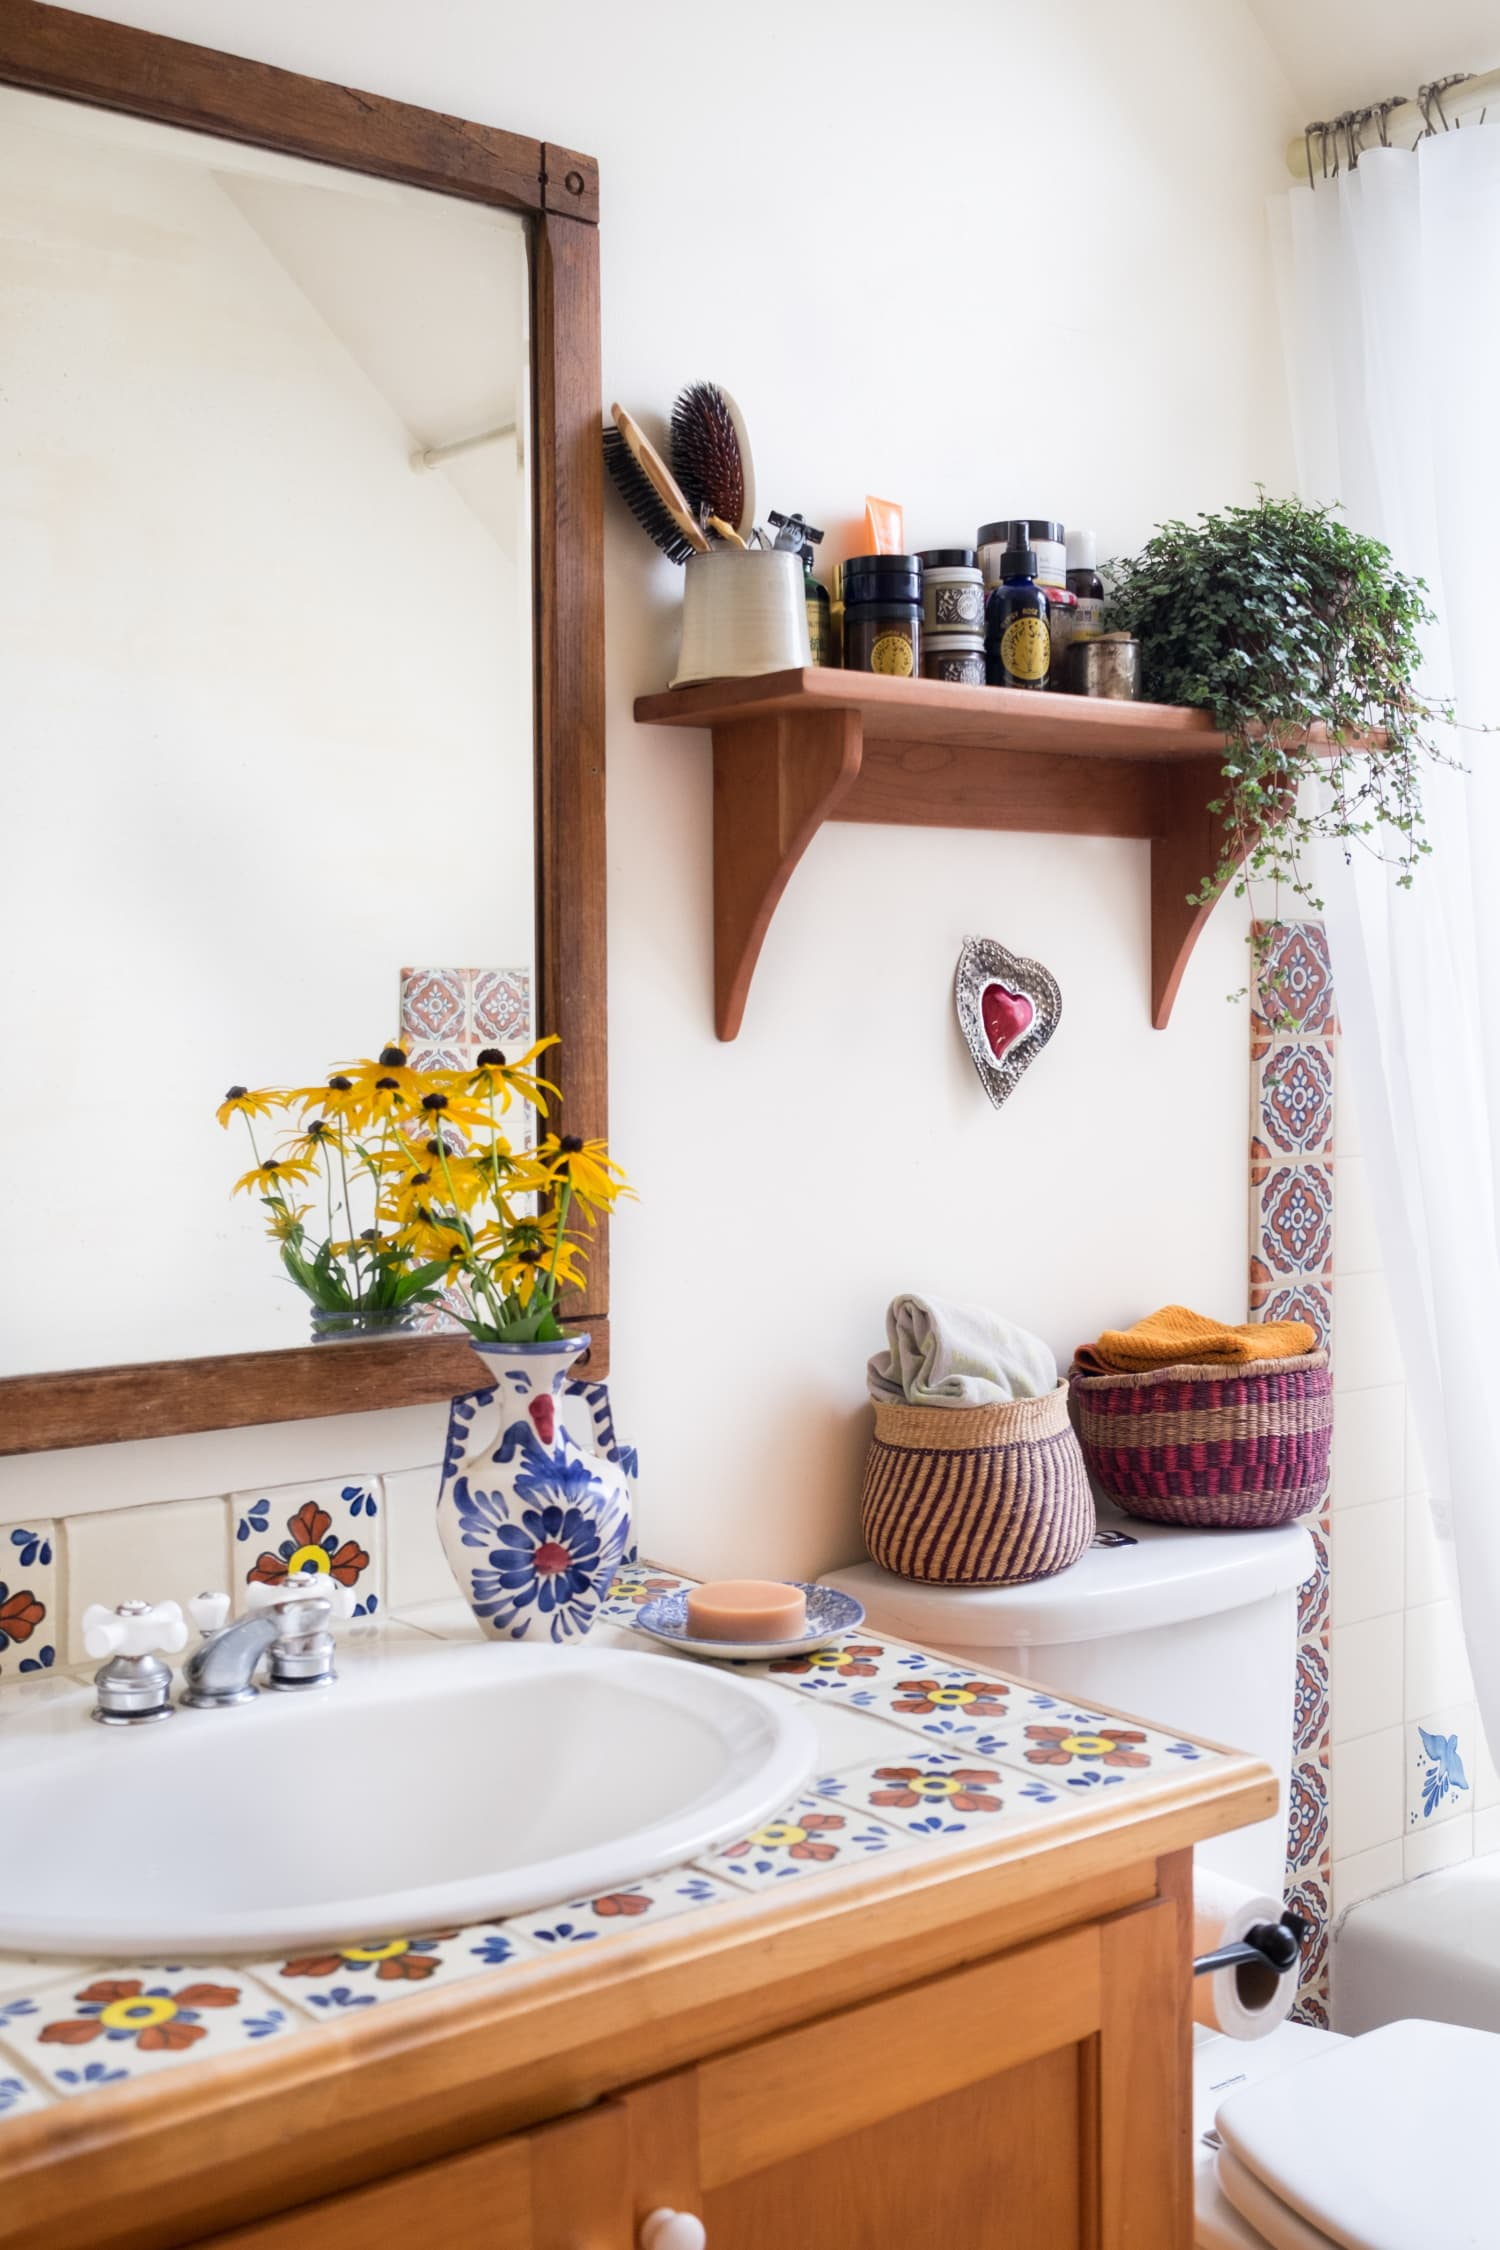 5 Things that Make Your Bathroom Look Messier Than It Is